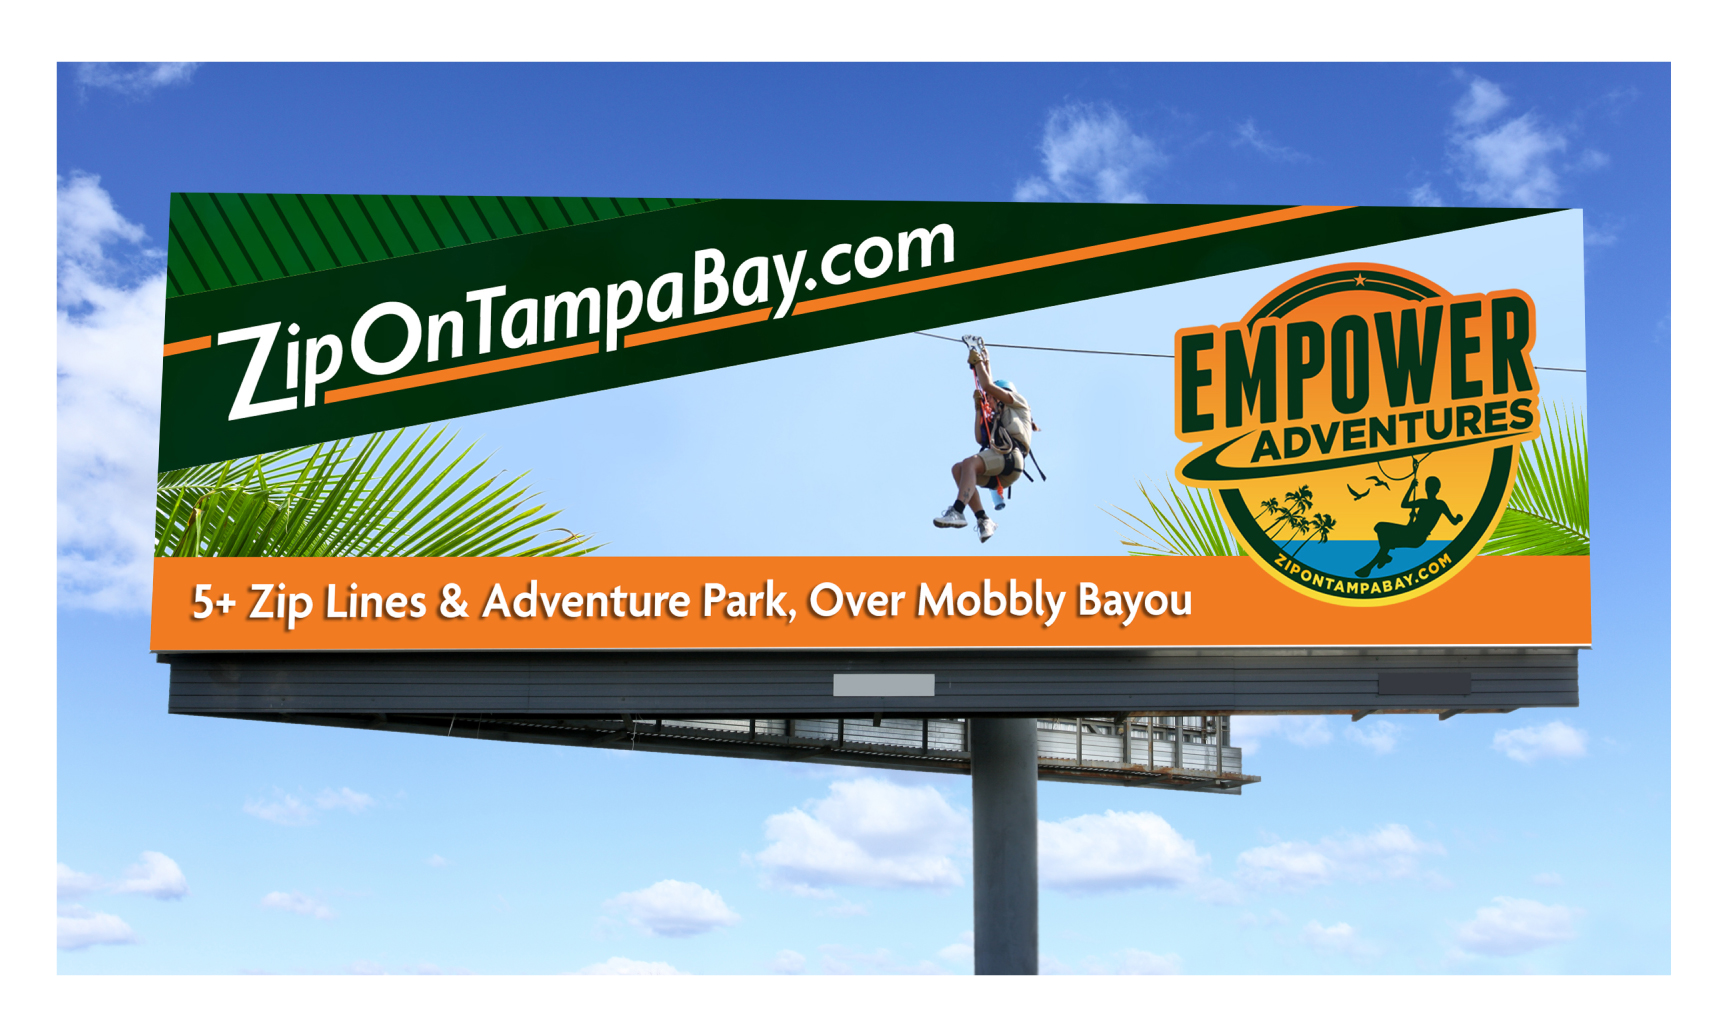 Billboard Ad for Empower Adventures showing man Ziplining